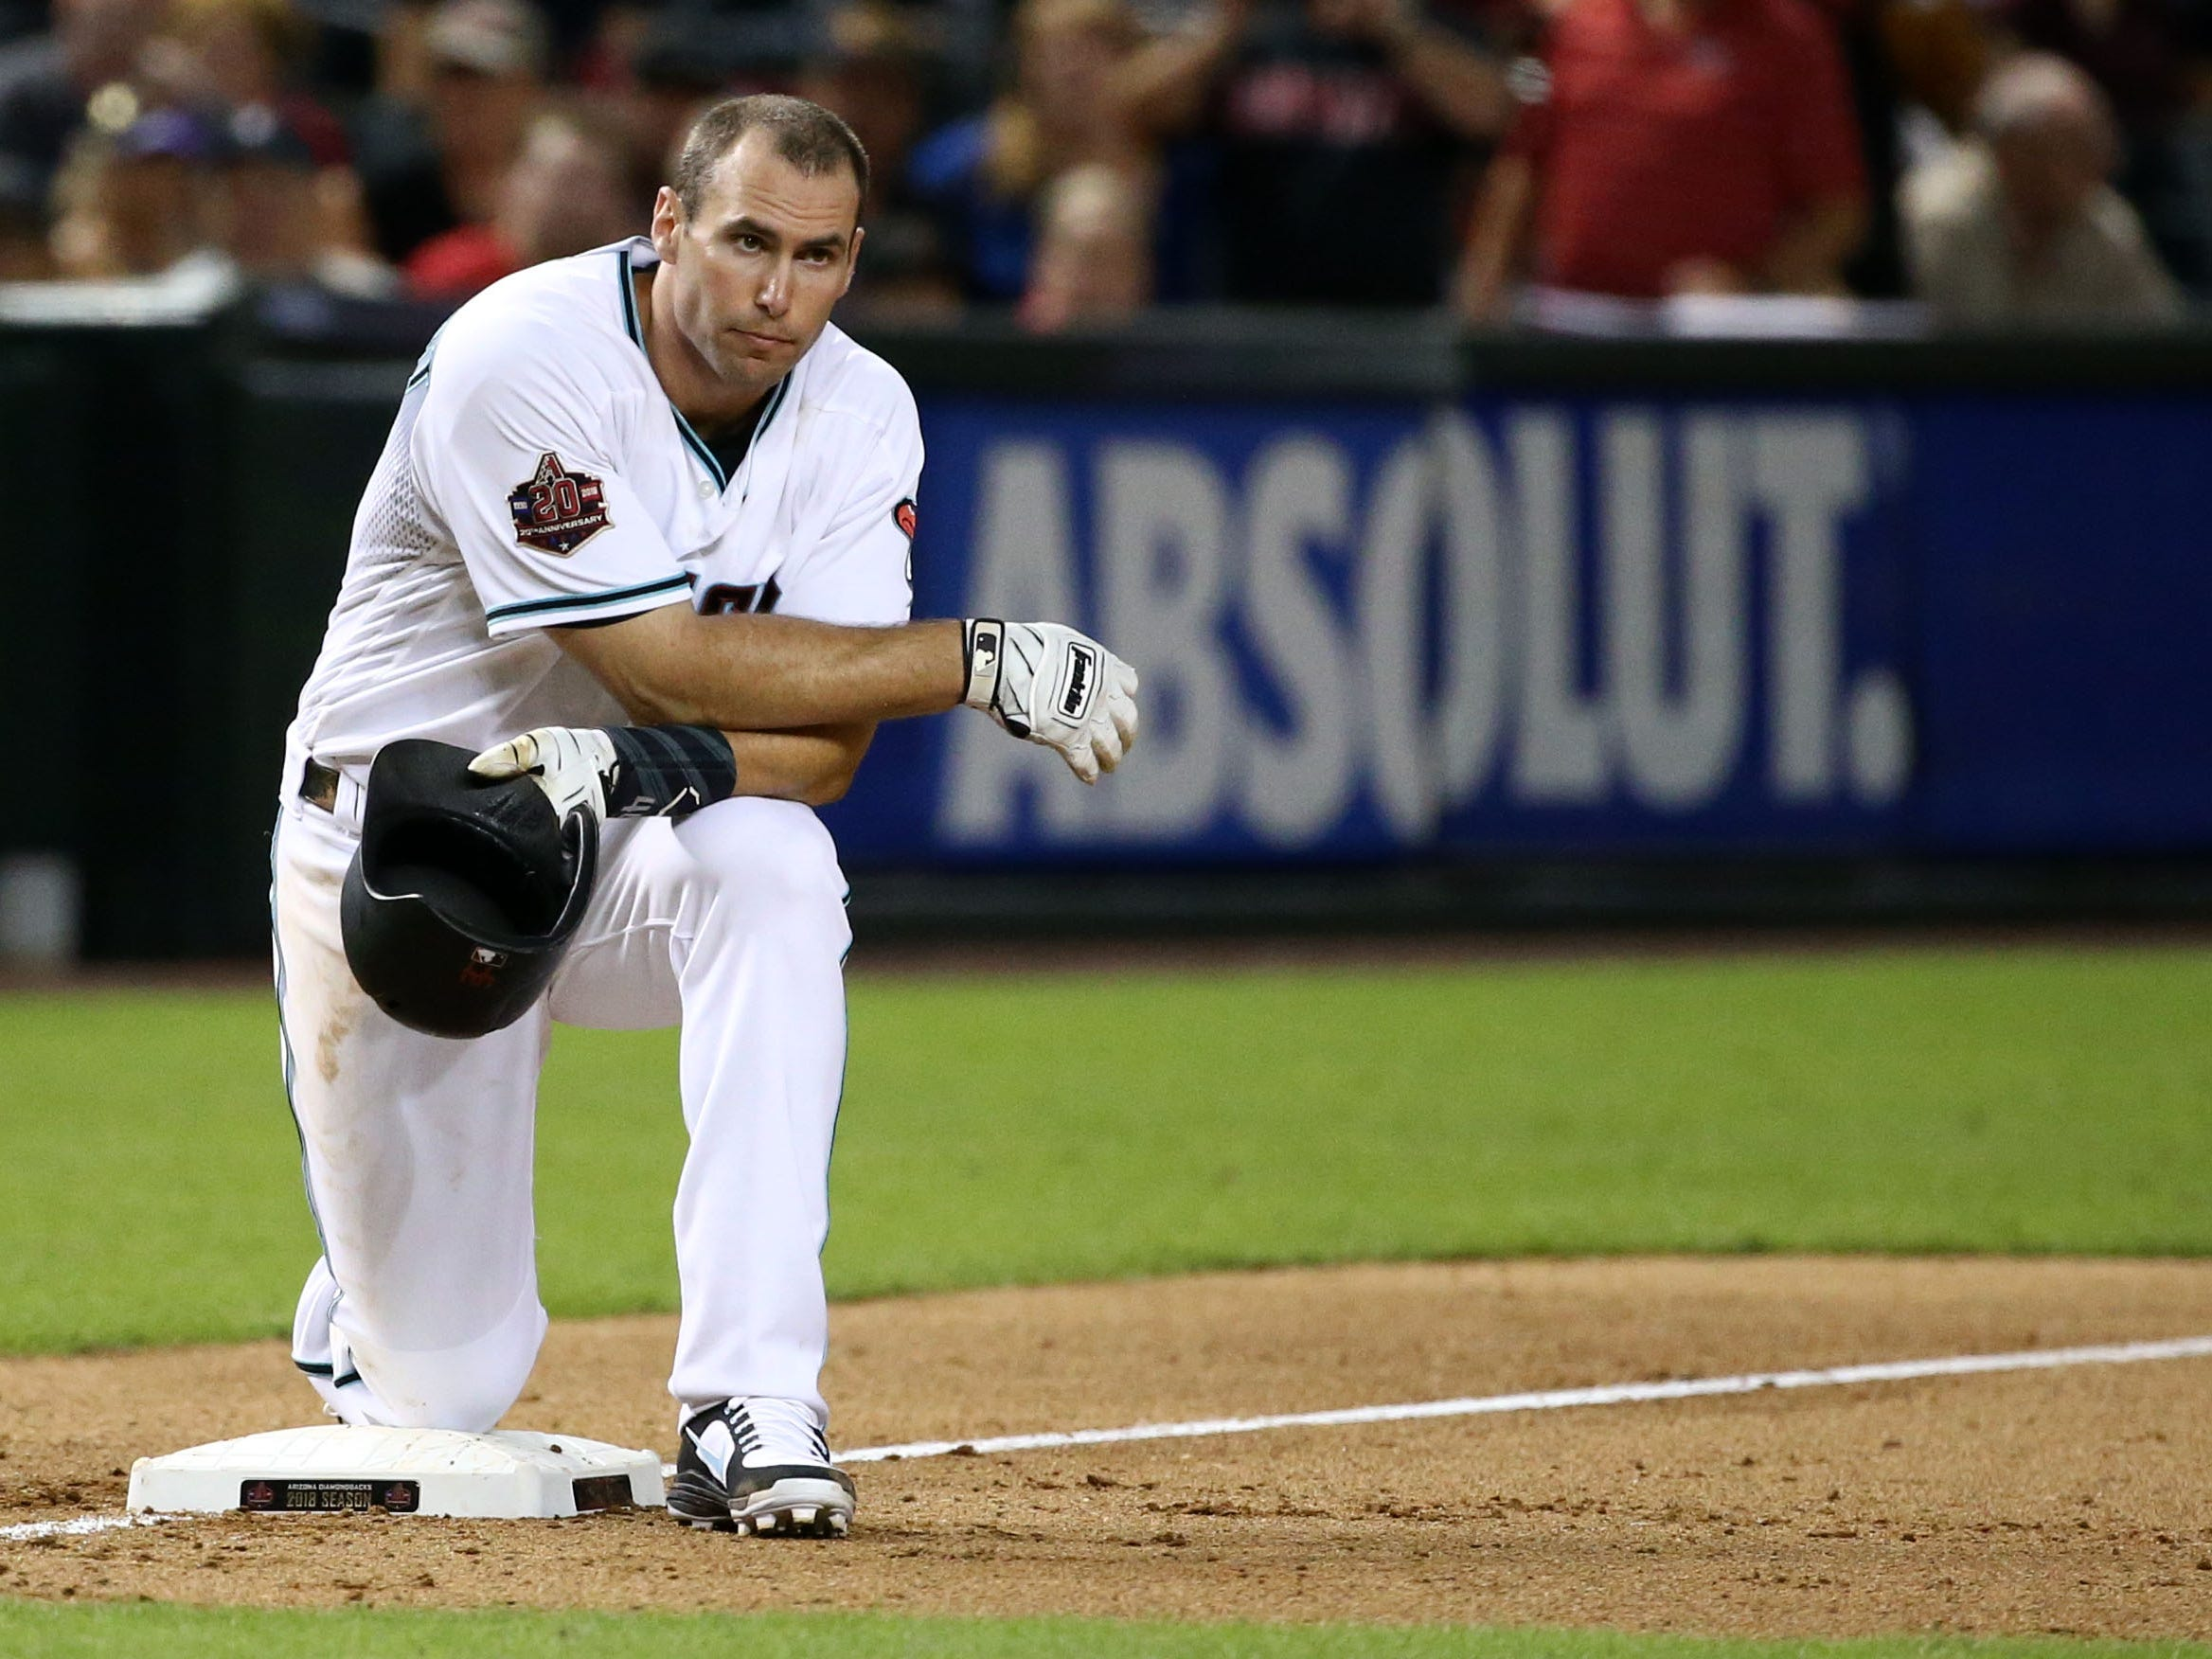 Arizona Diamondbacks Paul Goldschmidt waits at third base while Steven Souza Jr. is tossed from the game against the Atlanta Braves in the eighth inning on Sep. 6, 2018, at Chase Field in Phoenix, Ariz.